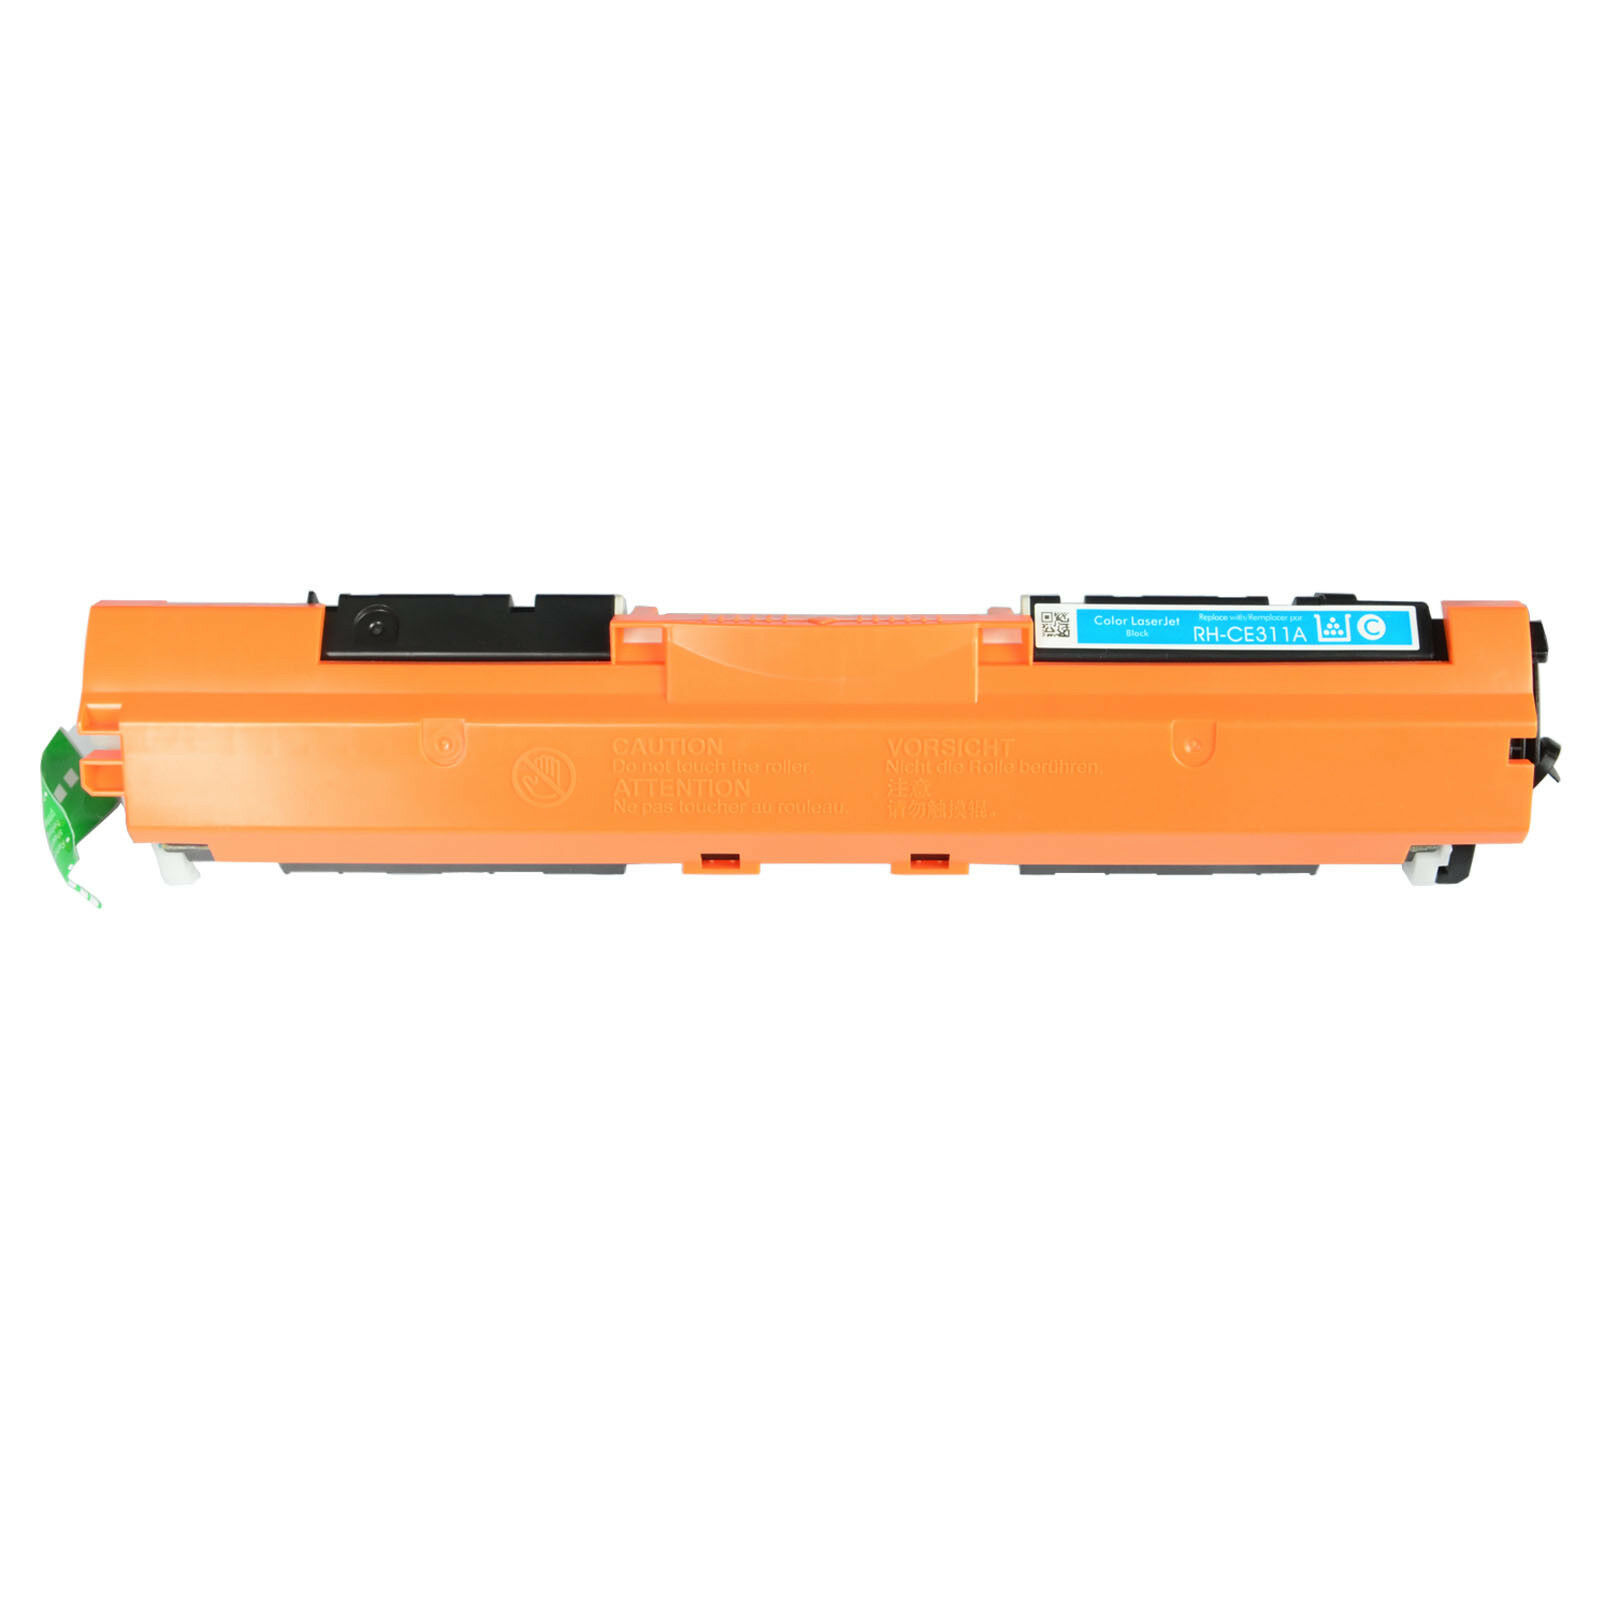 1 pk CE311A Toner for TopShot Pro M275 MFP Pro CP1025nw Color Printer